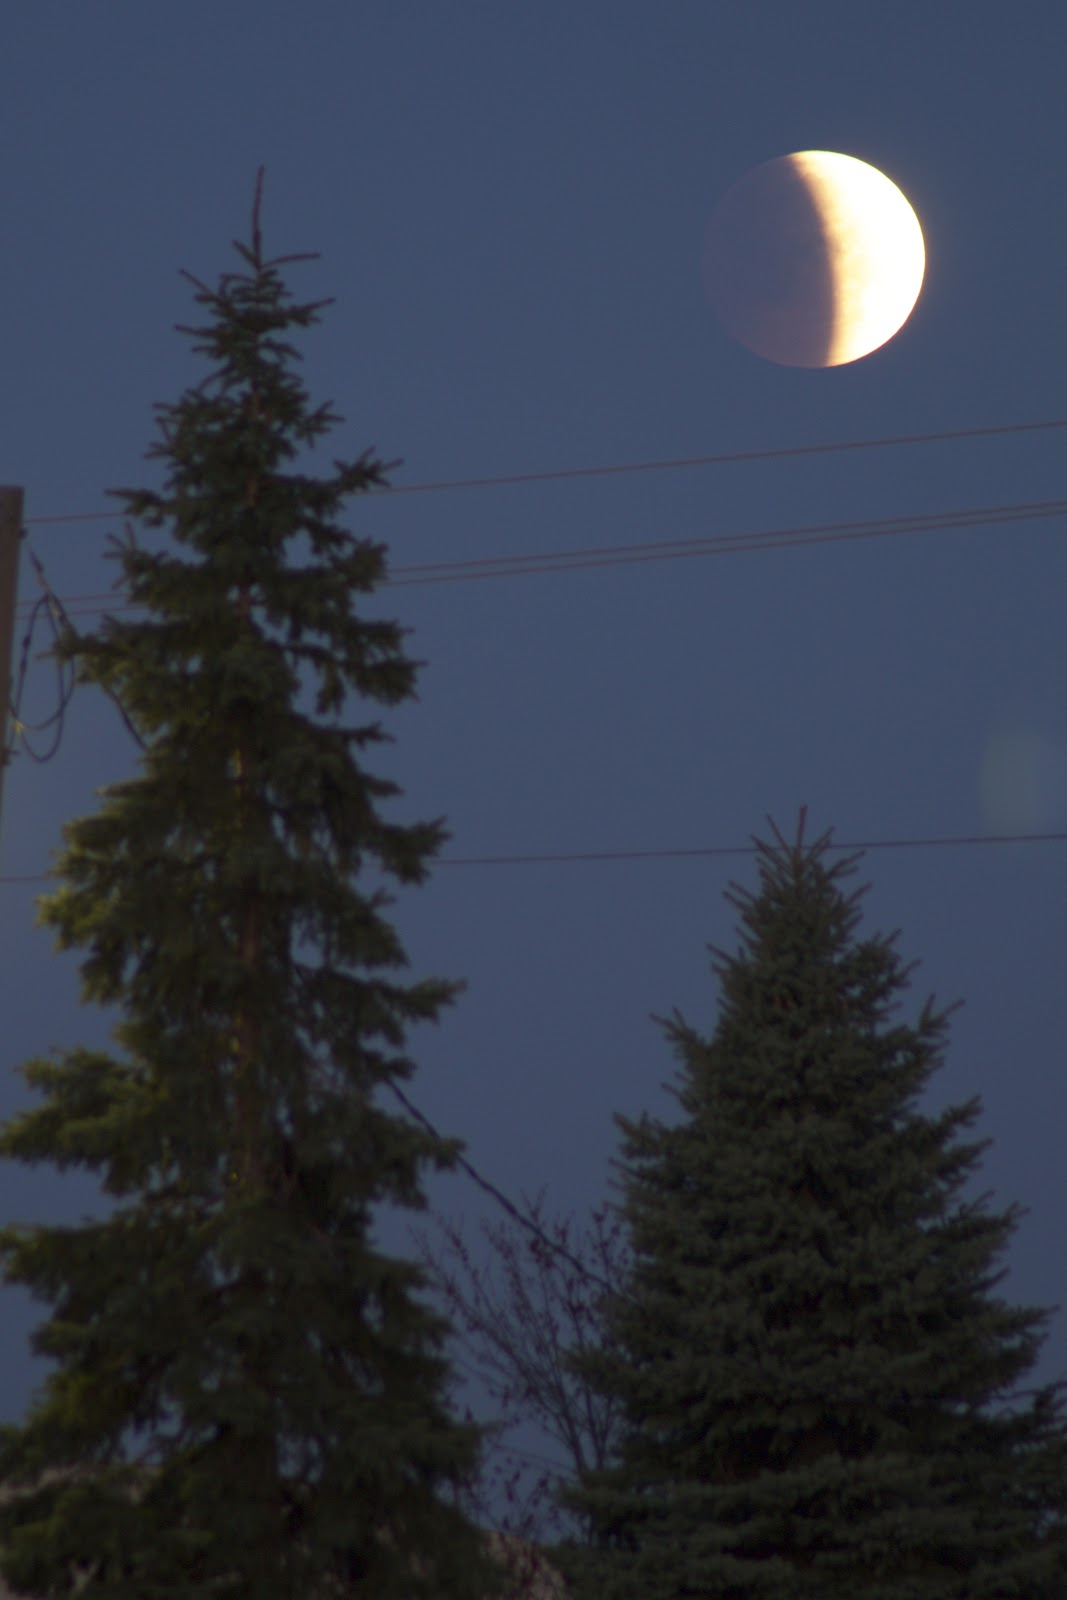 lunar eclipse photo april 4, 2015